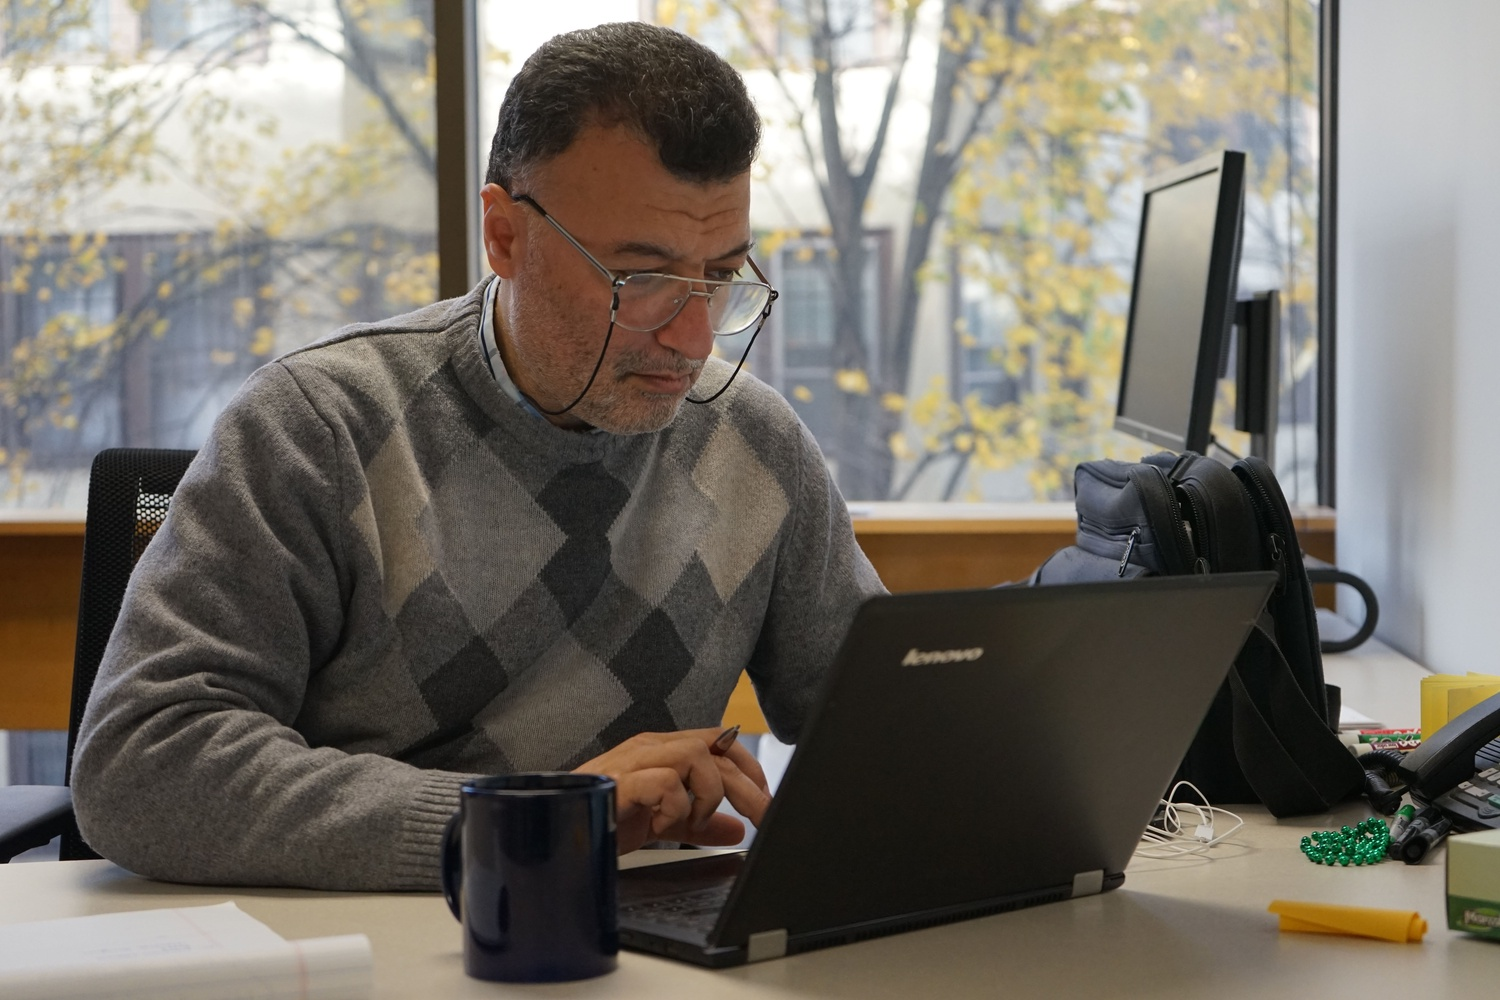 Mahmoud Hariri working at his desk in the Harvard Humanitarian Initiative office as a current Scholars at Risk fellow.